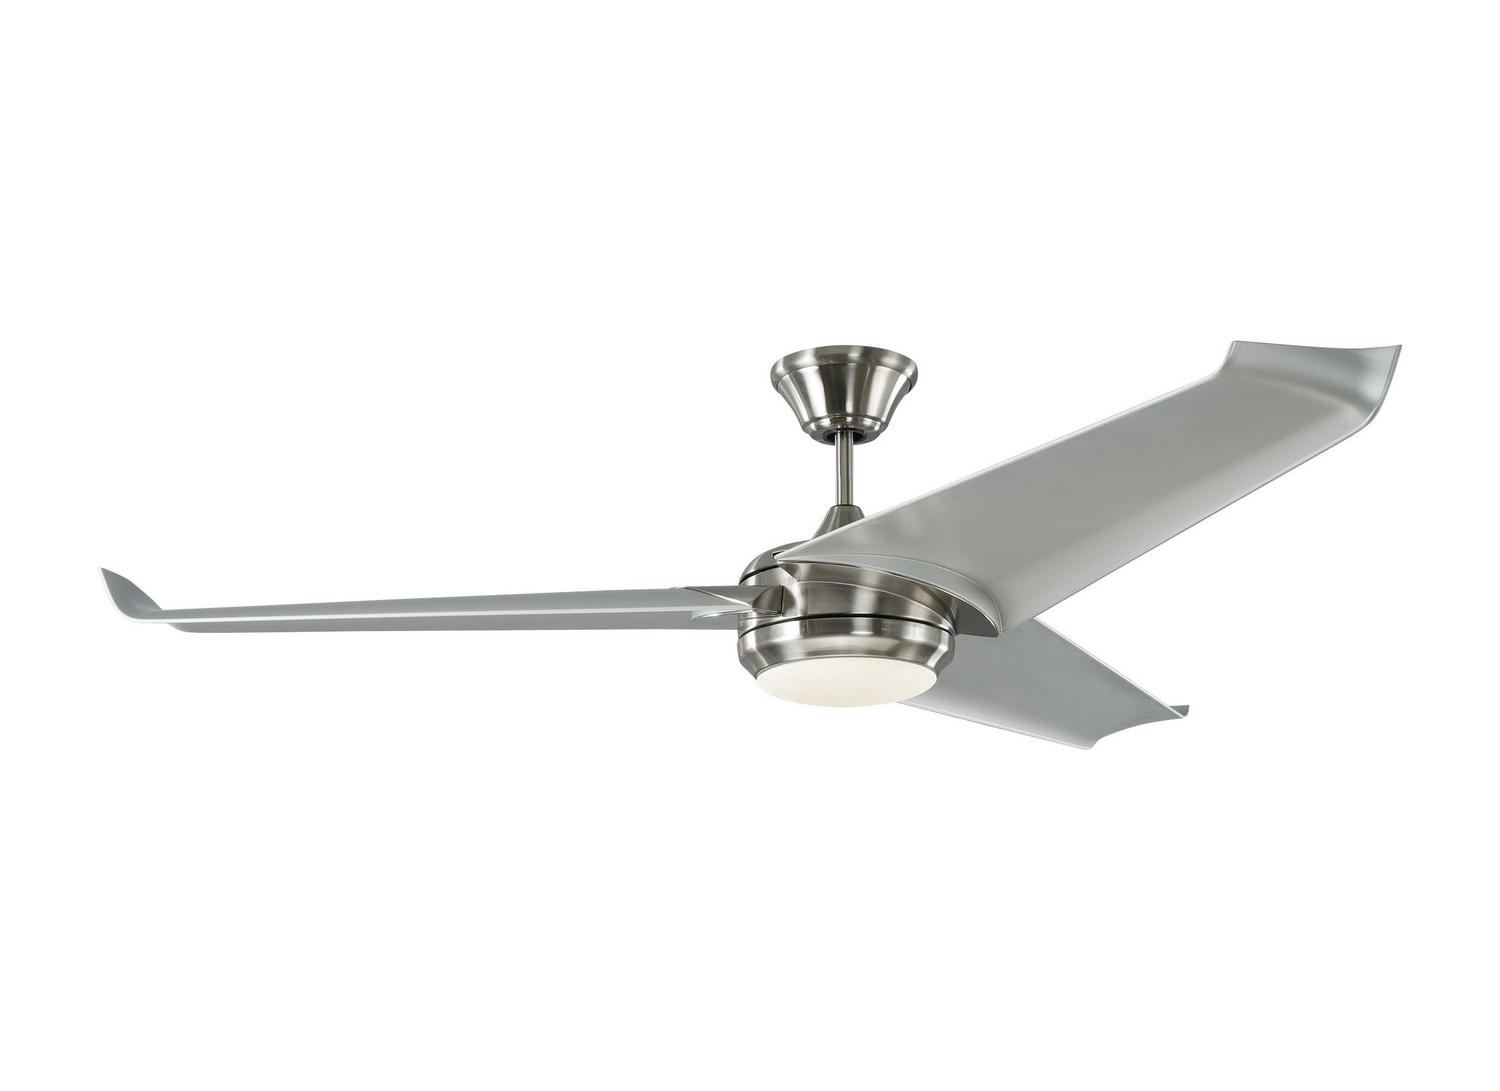 60 inchCeiling Fan from the Orville collection by Monte Carlo 3OVR60BSD